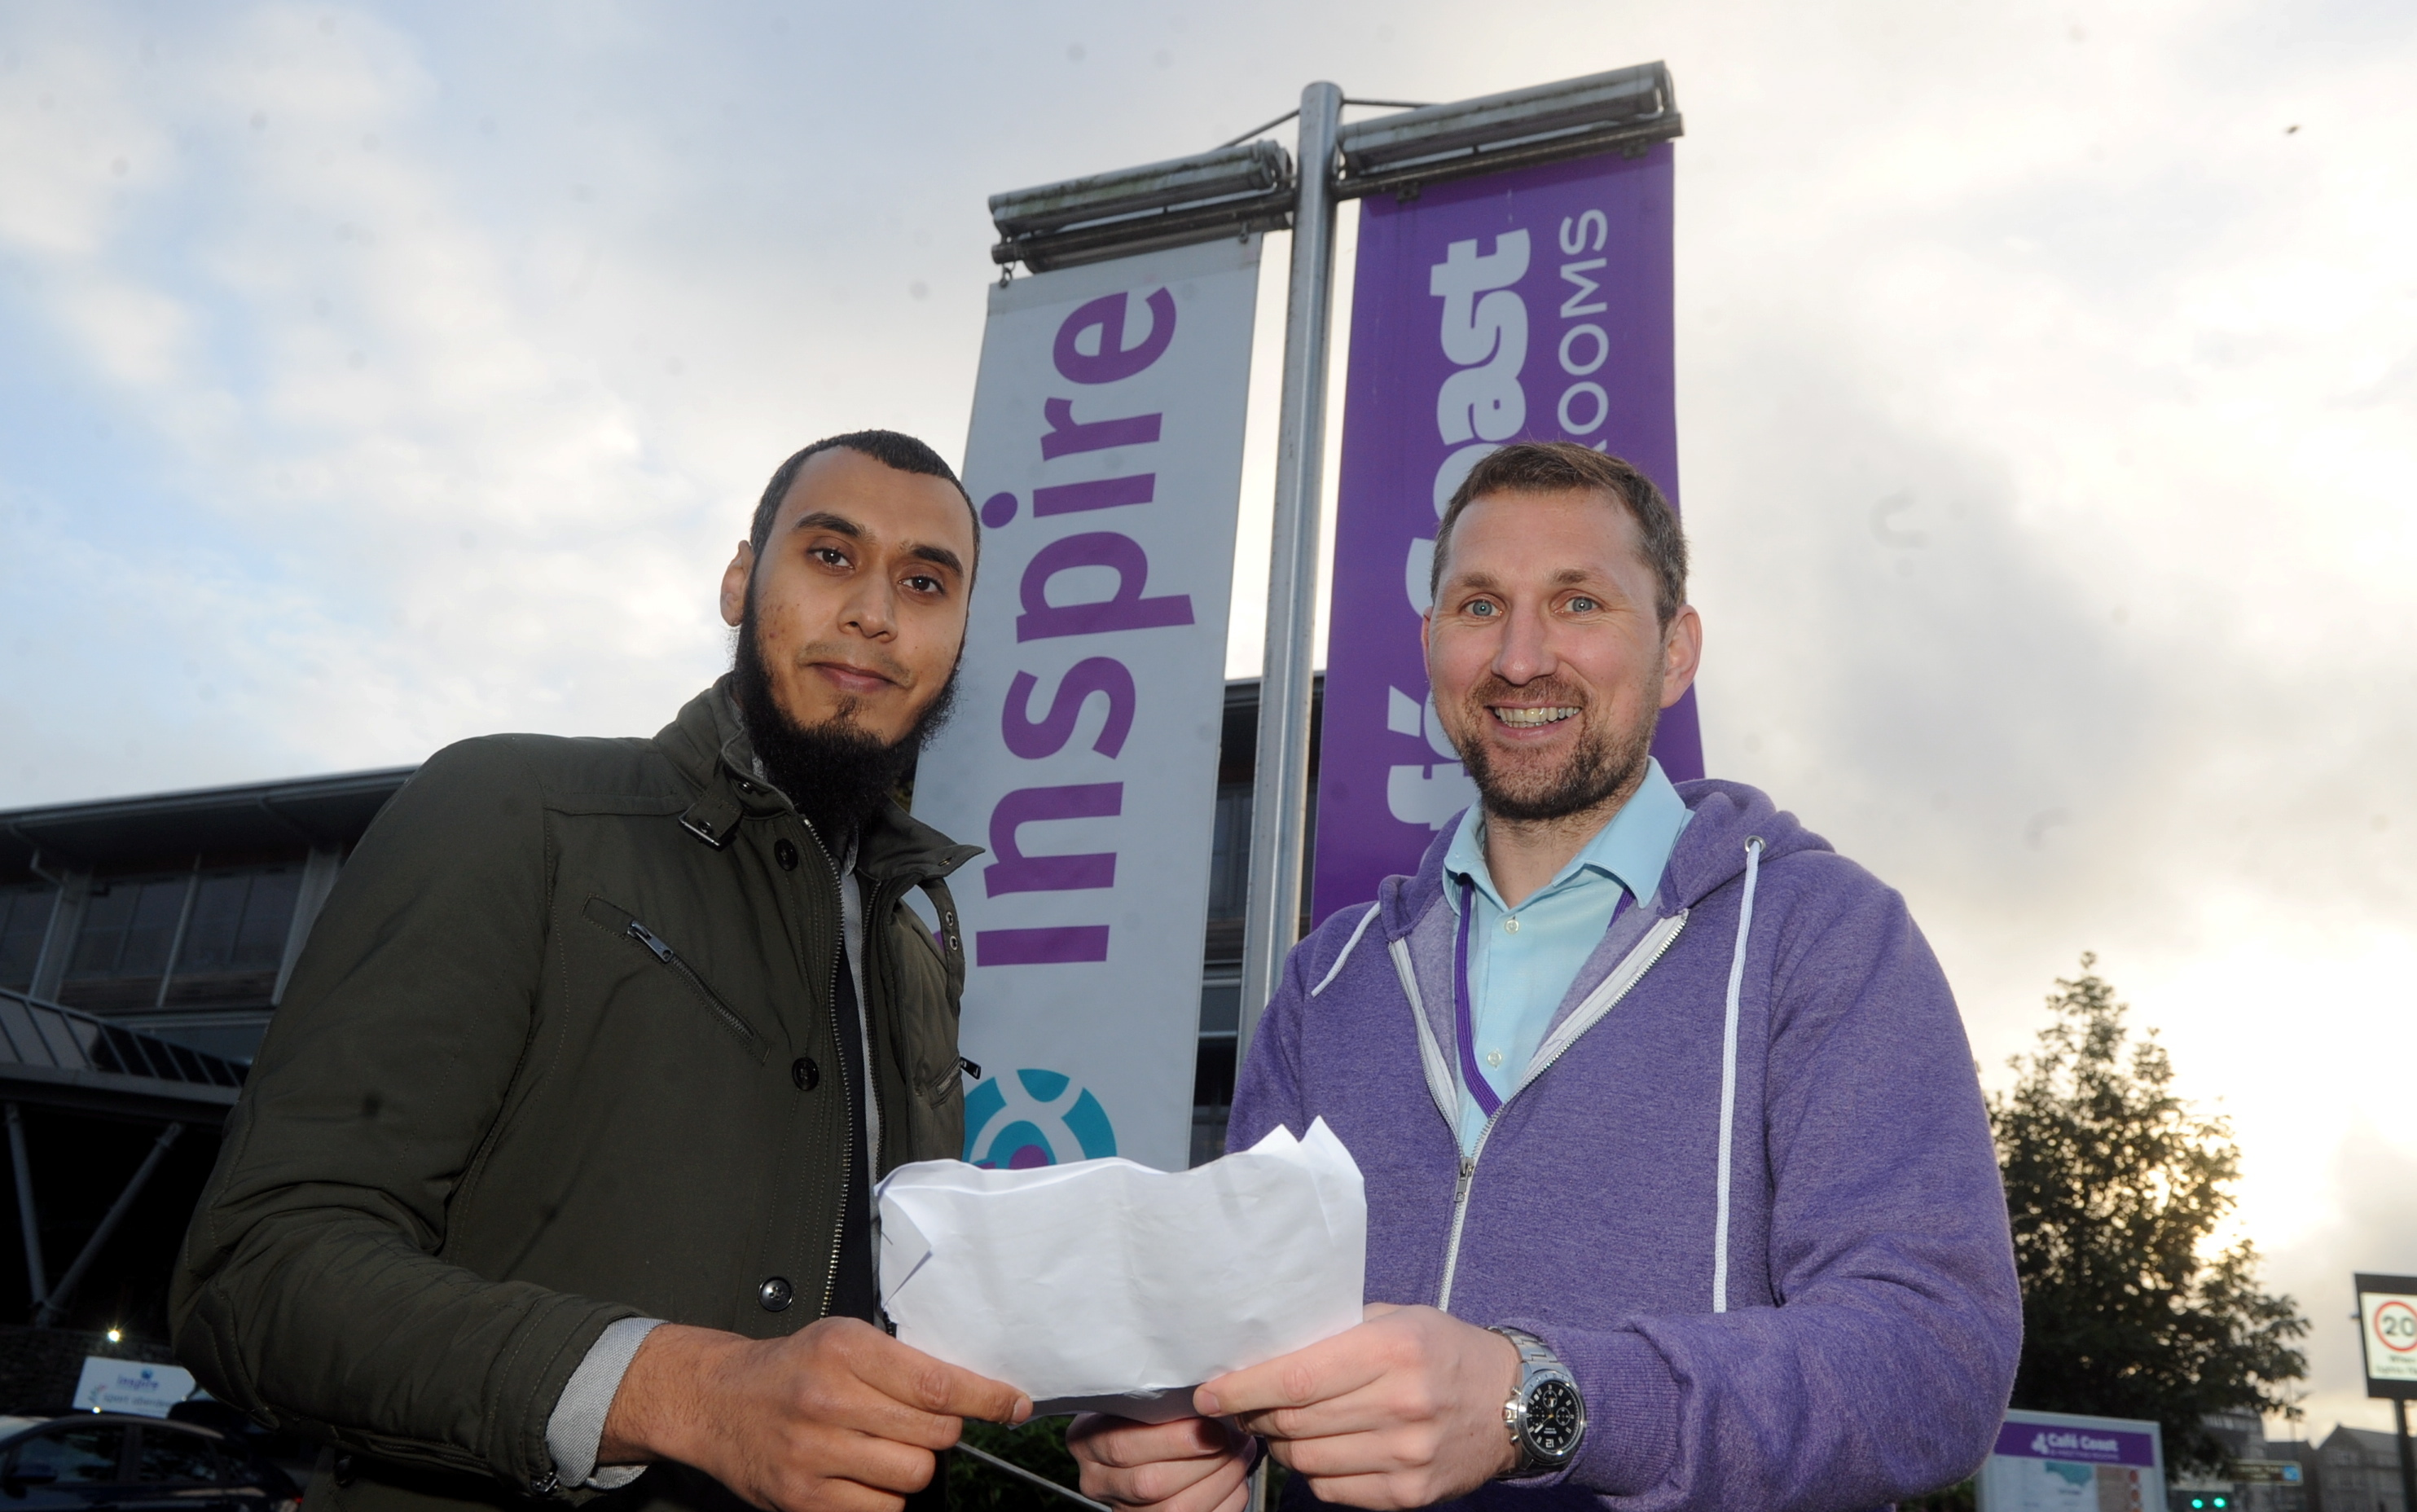 From left, Mamun Razzak, co-ordinator of the event and Peter Wood of Inspire.